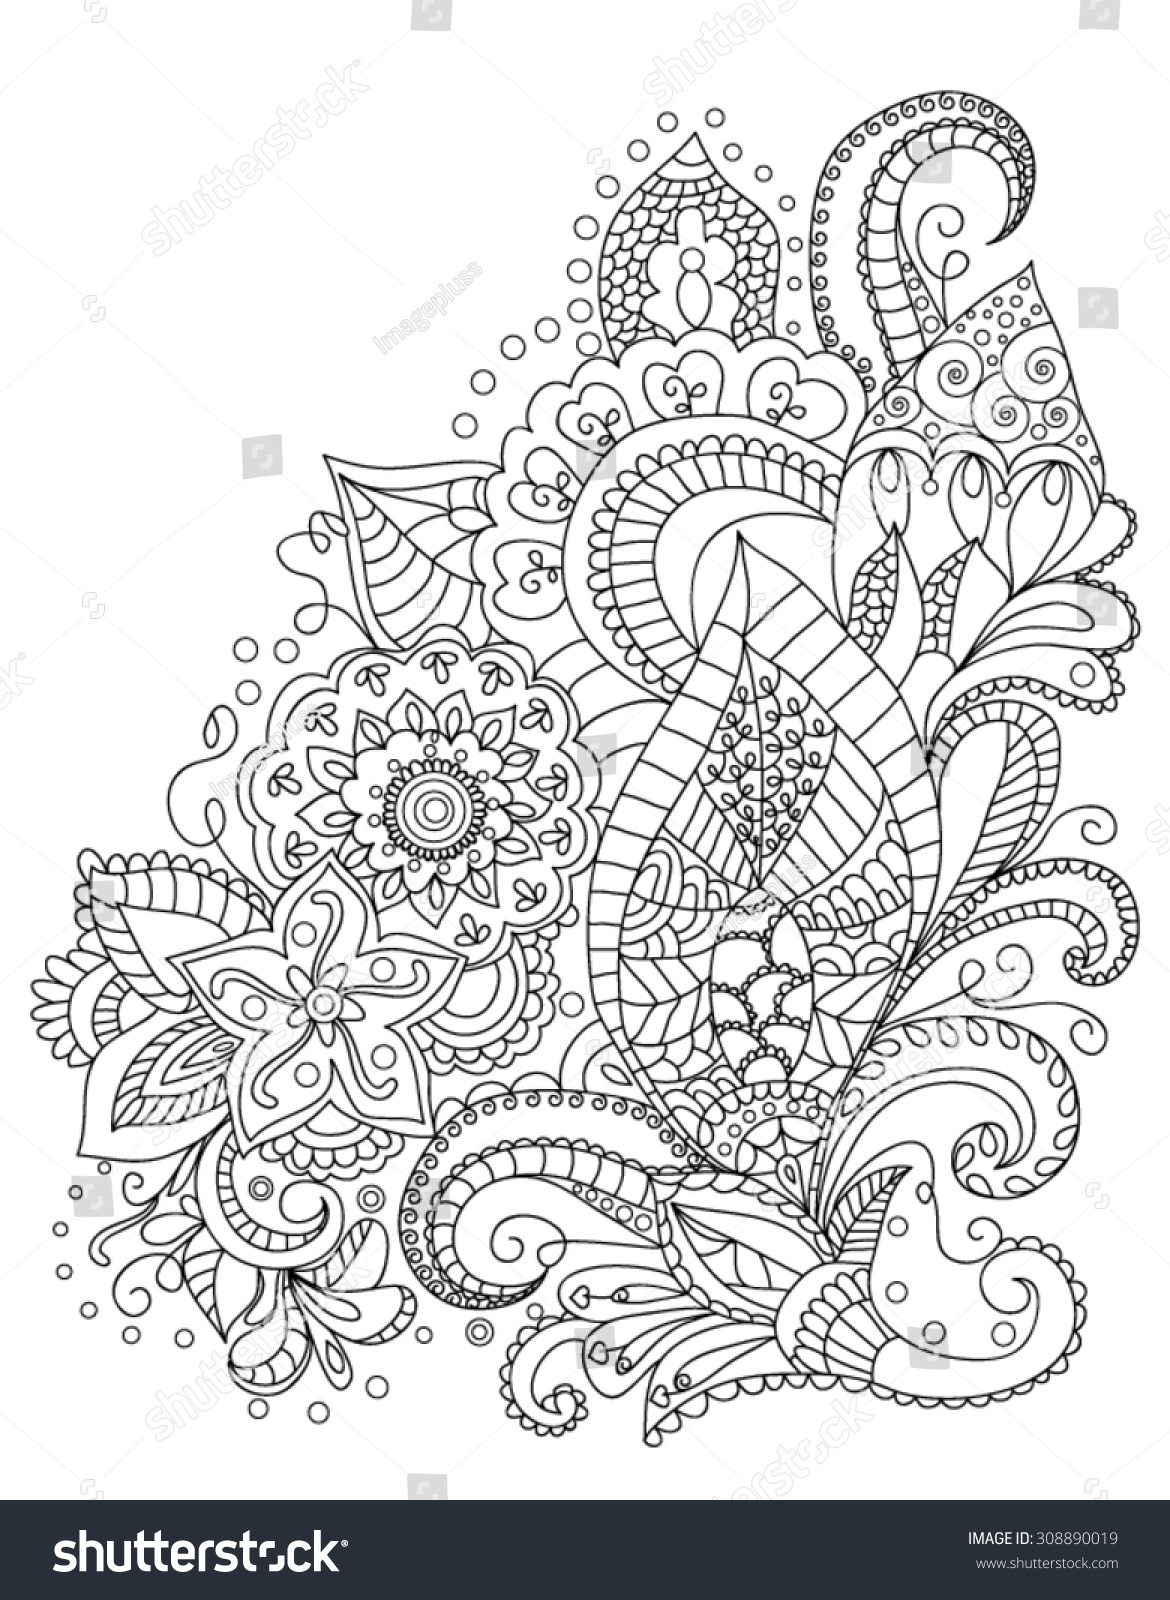 Coloring pages henna - Henna Flower Coloring Pages 2